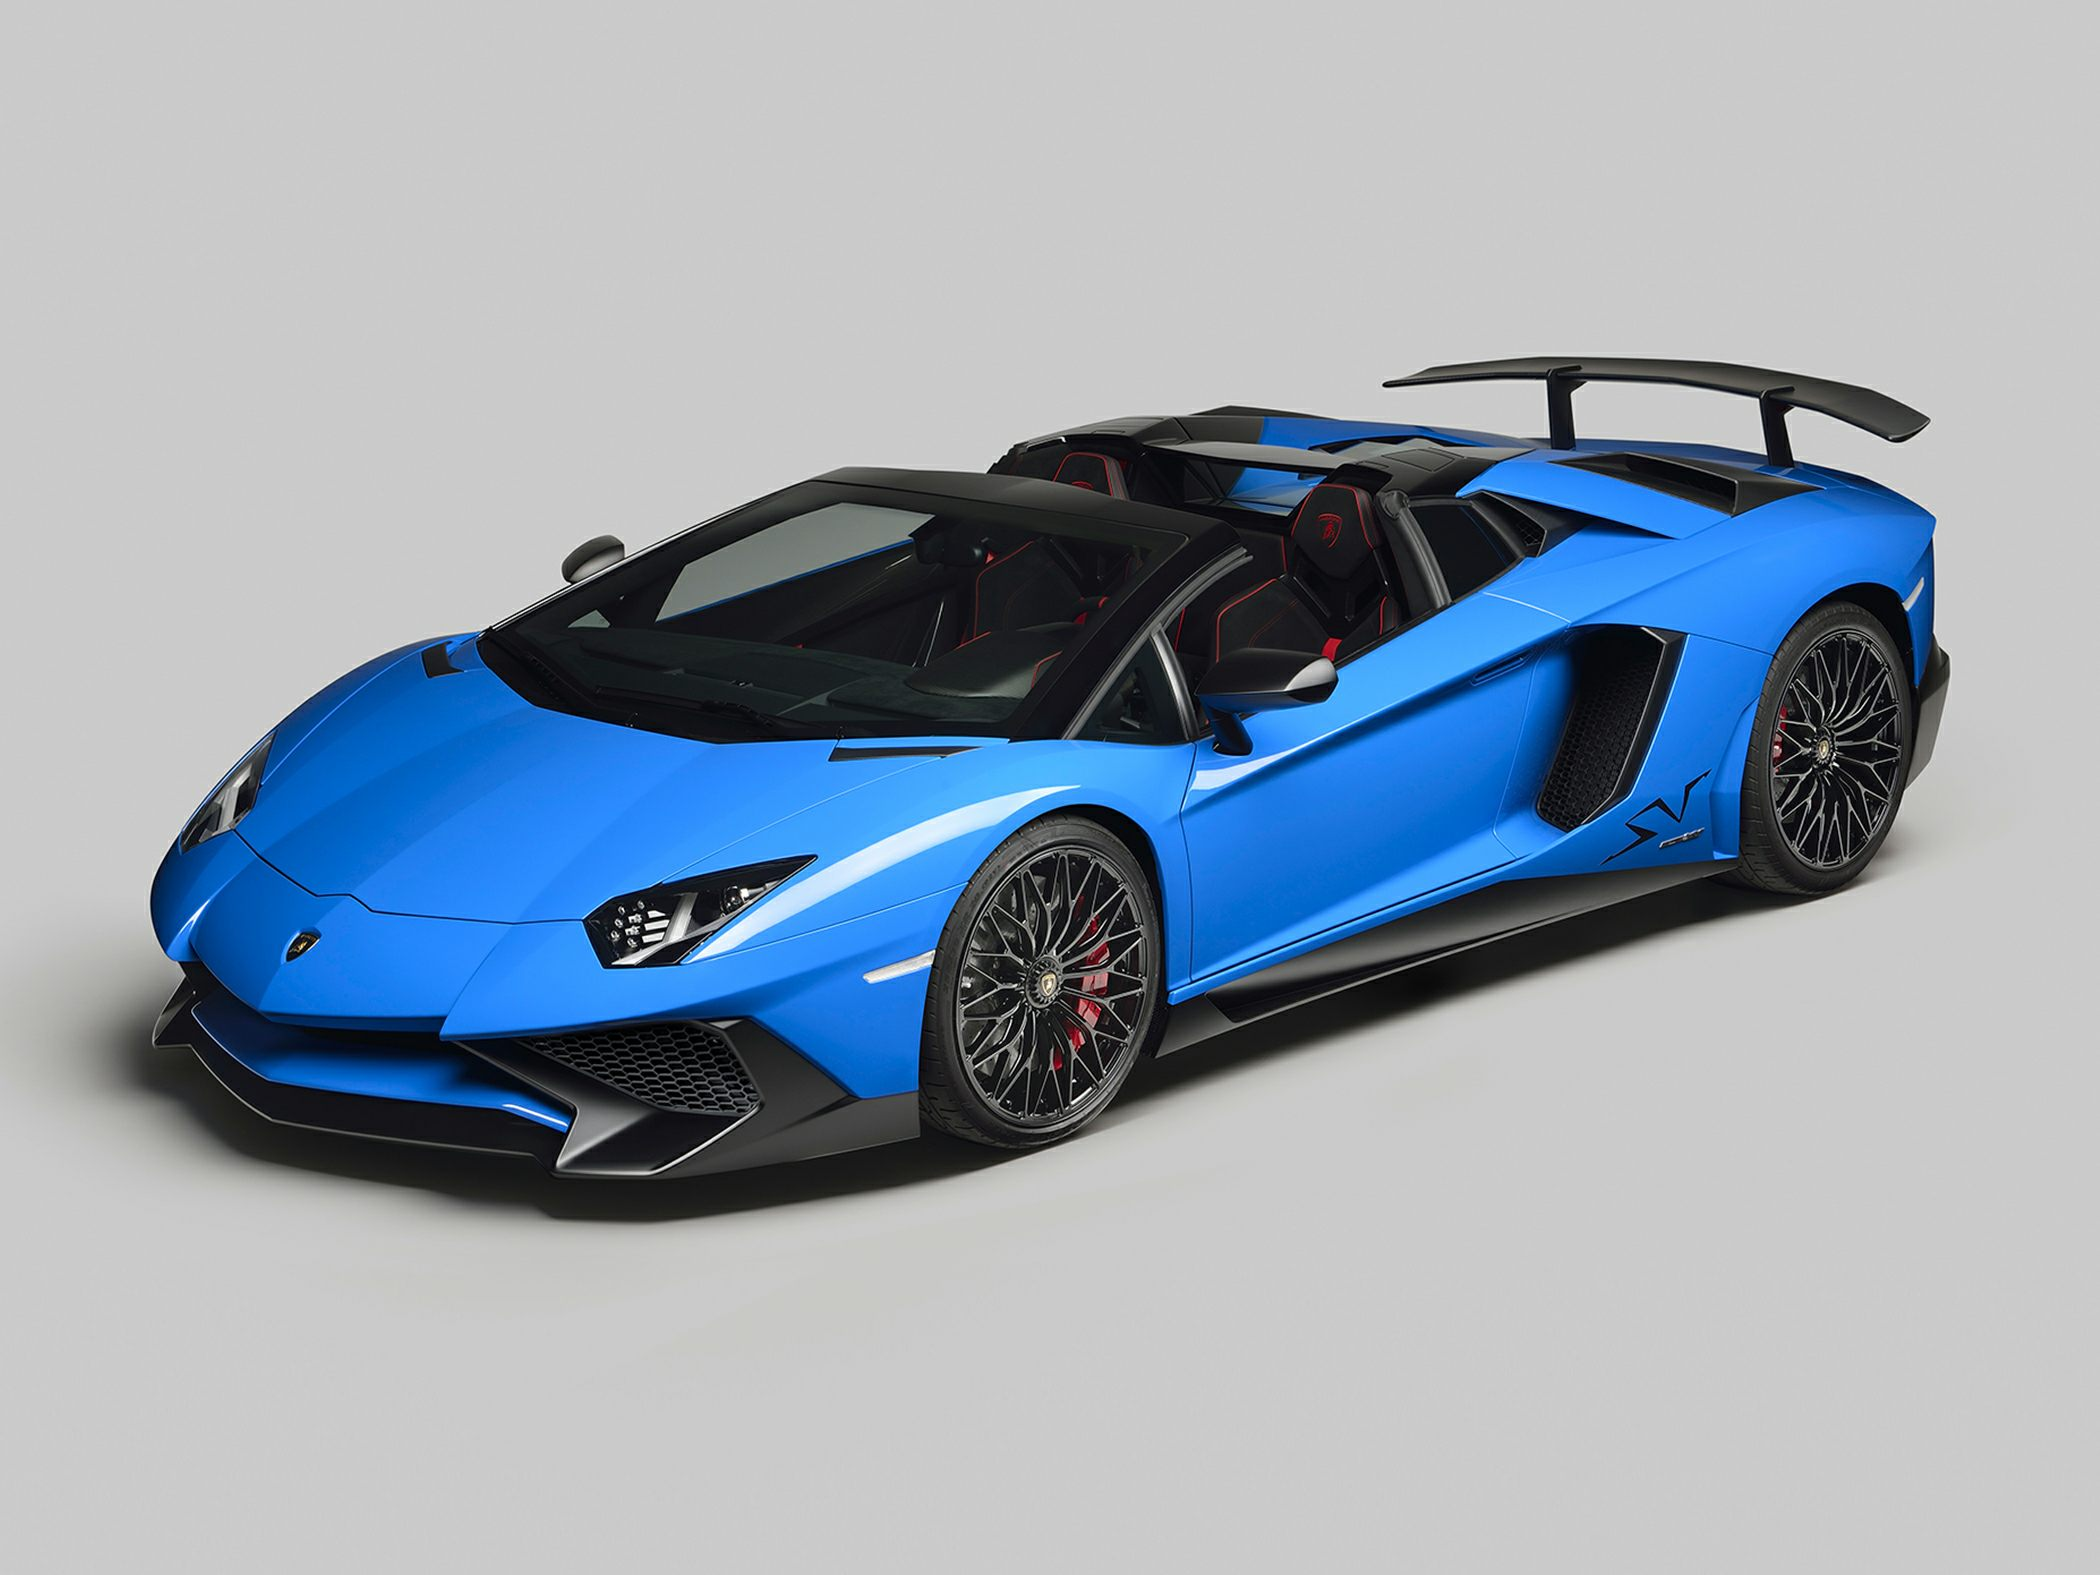 2017 Lamborghini Aventador Lp750 4 Superveloce 2dr All Wheel Drive Roadster Pricing And Options